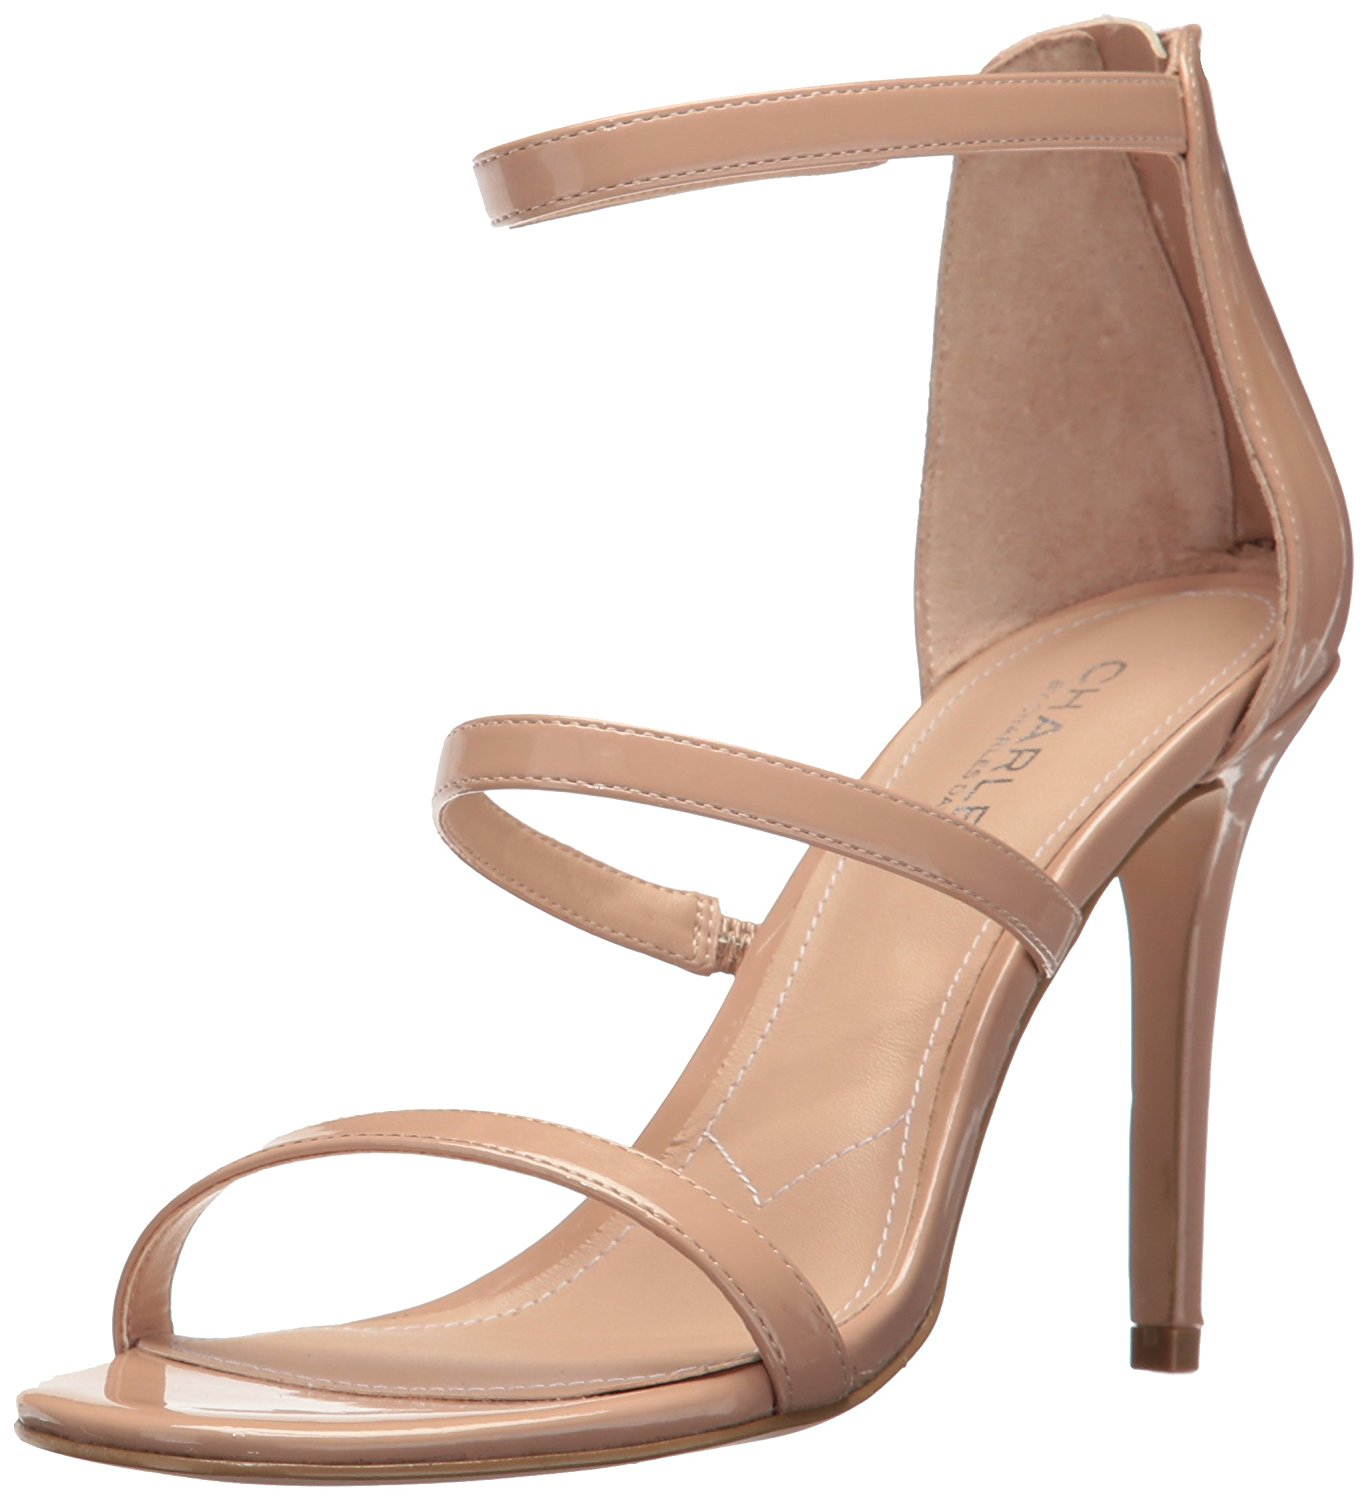 Charles by Charles David Womens Ria Open Toe Casual Ankle Strap Nude Size 85